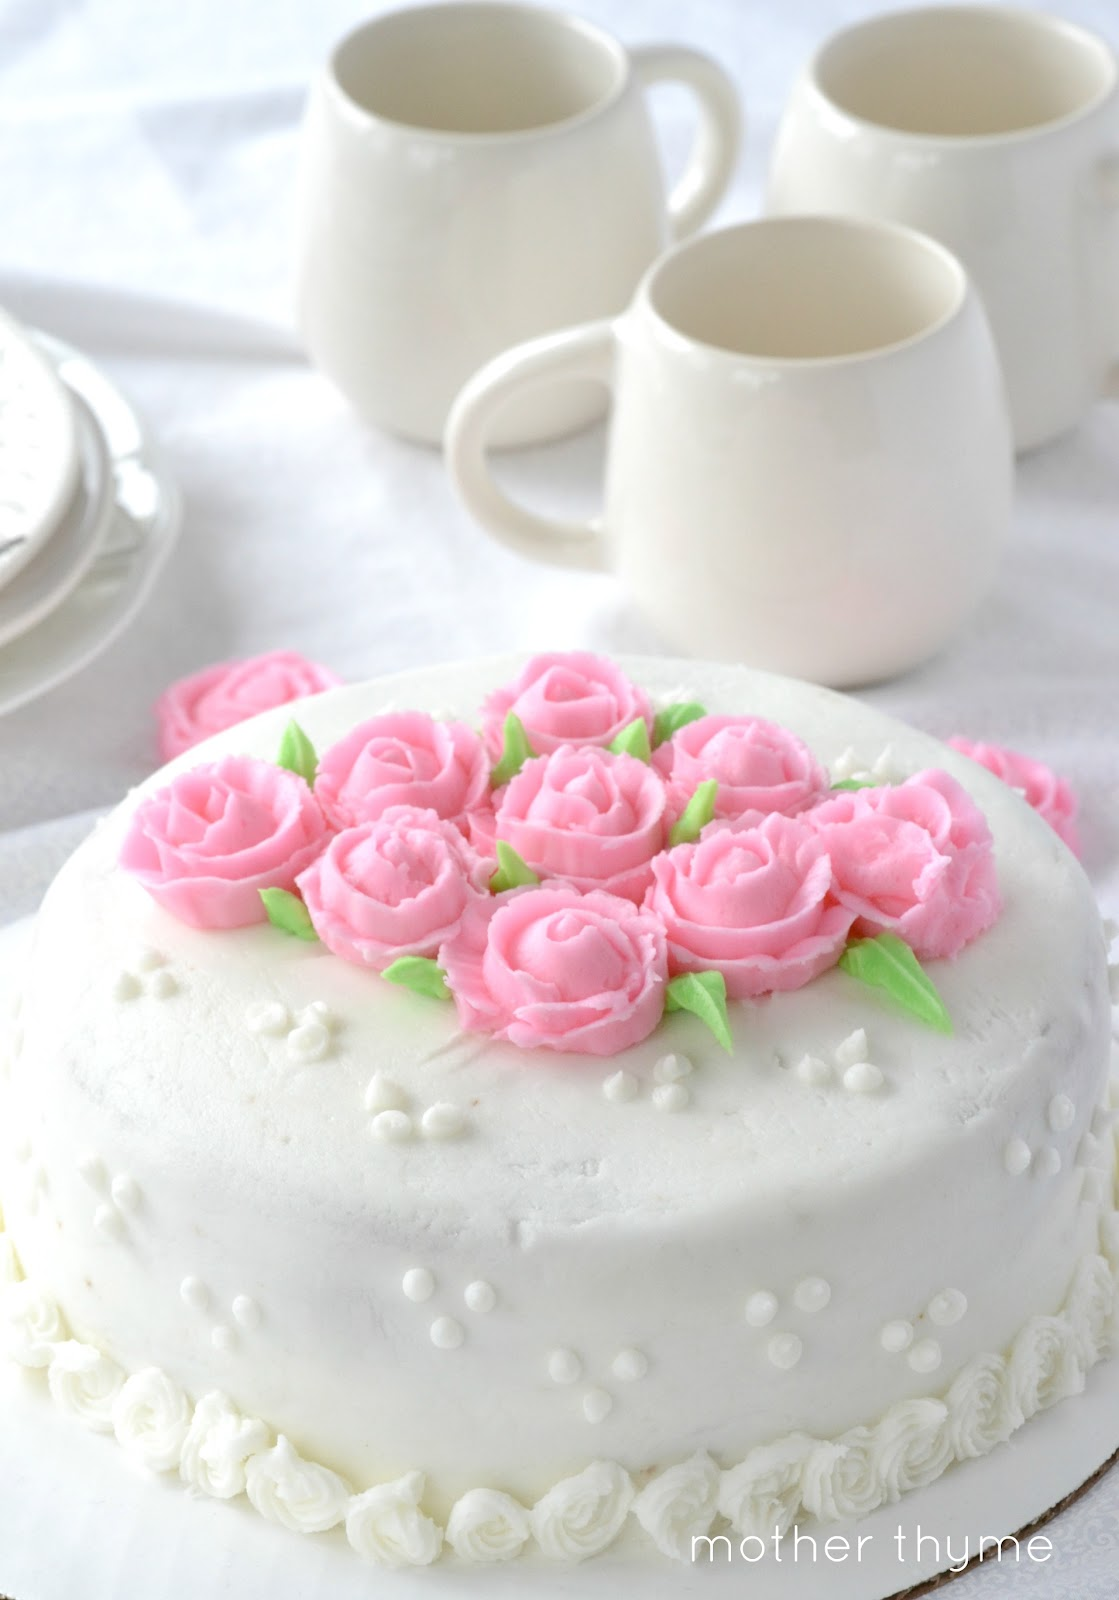 Cake Decorating On Facebook : Cake Decorating: Part 3 - Mother Thyme